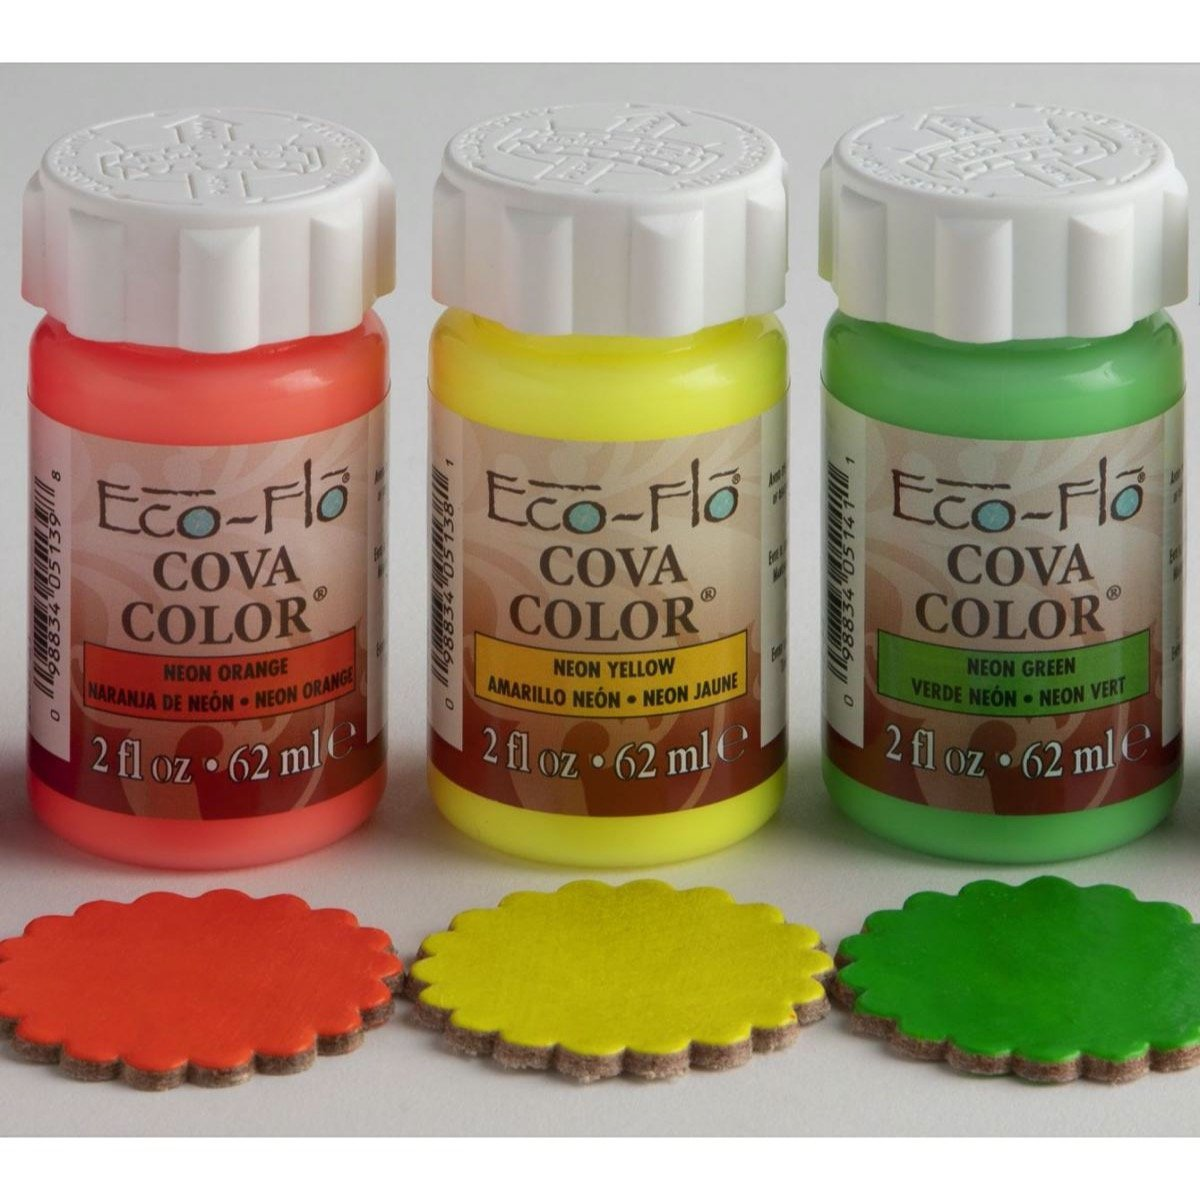 Assorted Set Of 3 Eco-Flo Cova Neon Colors